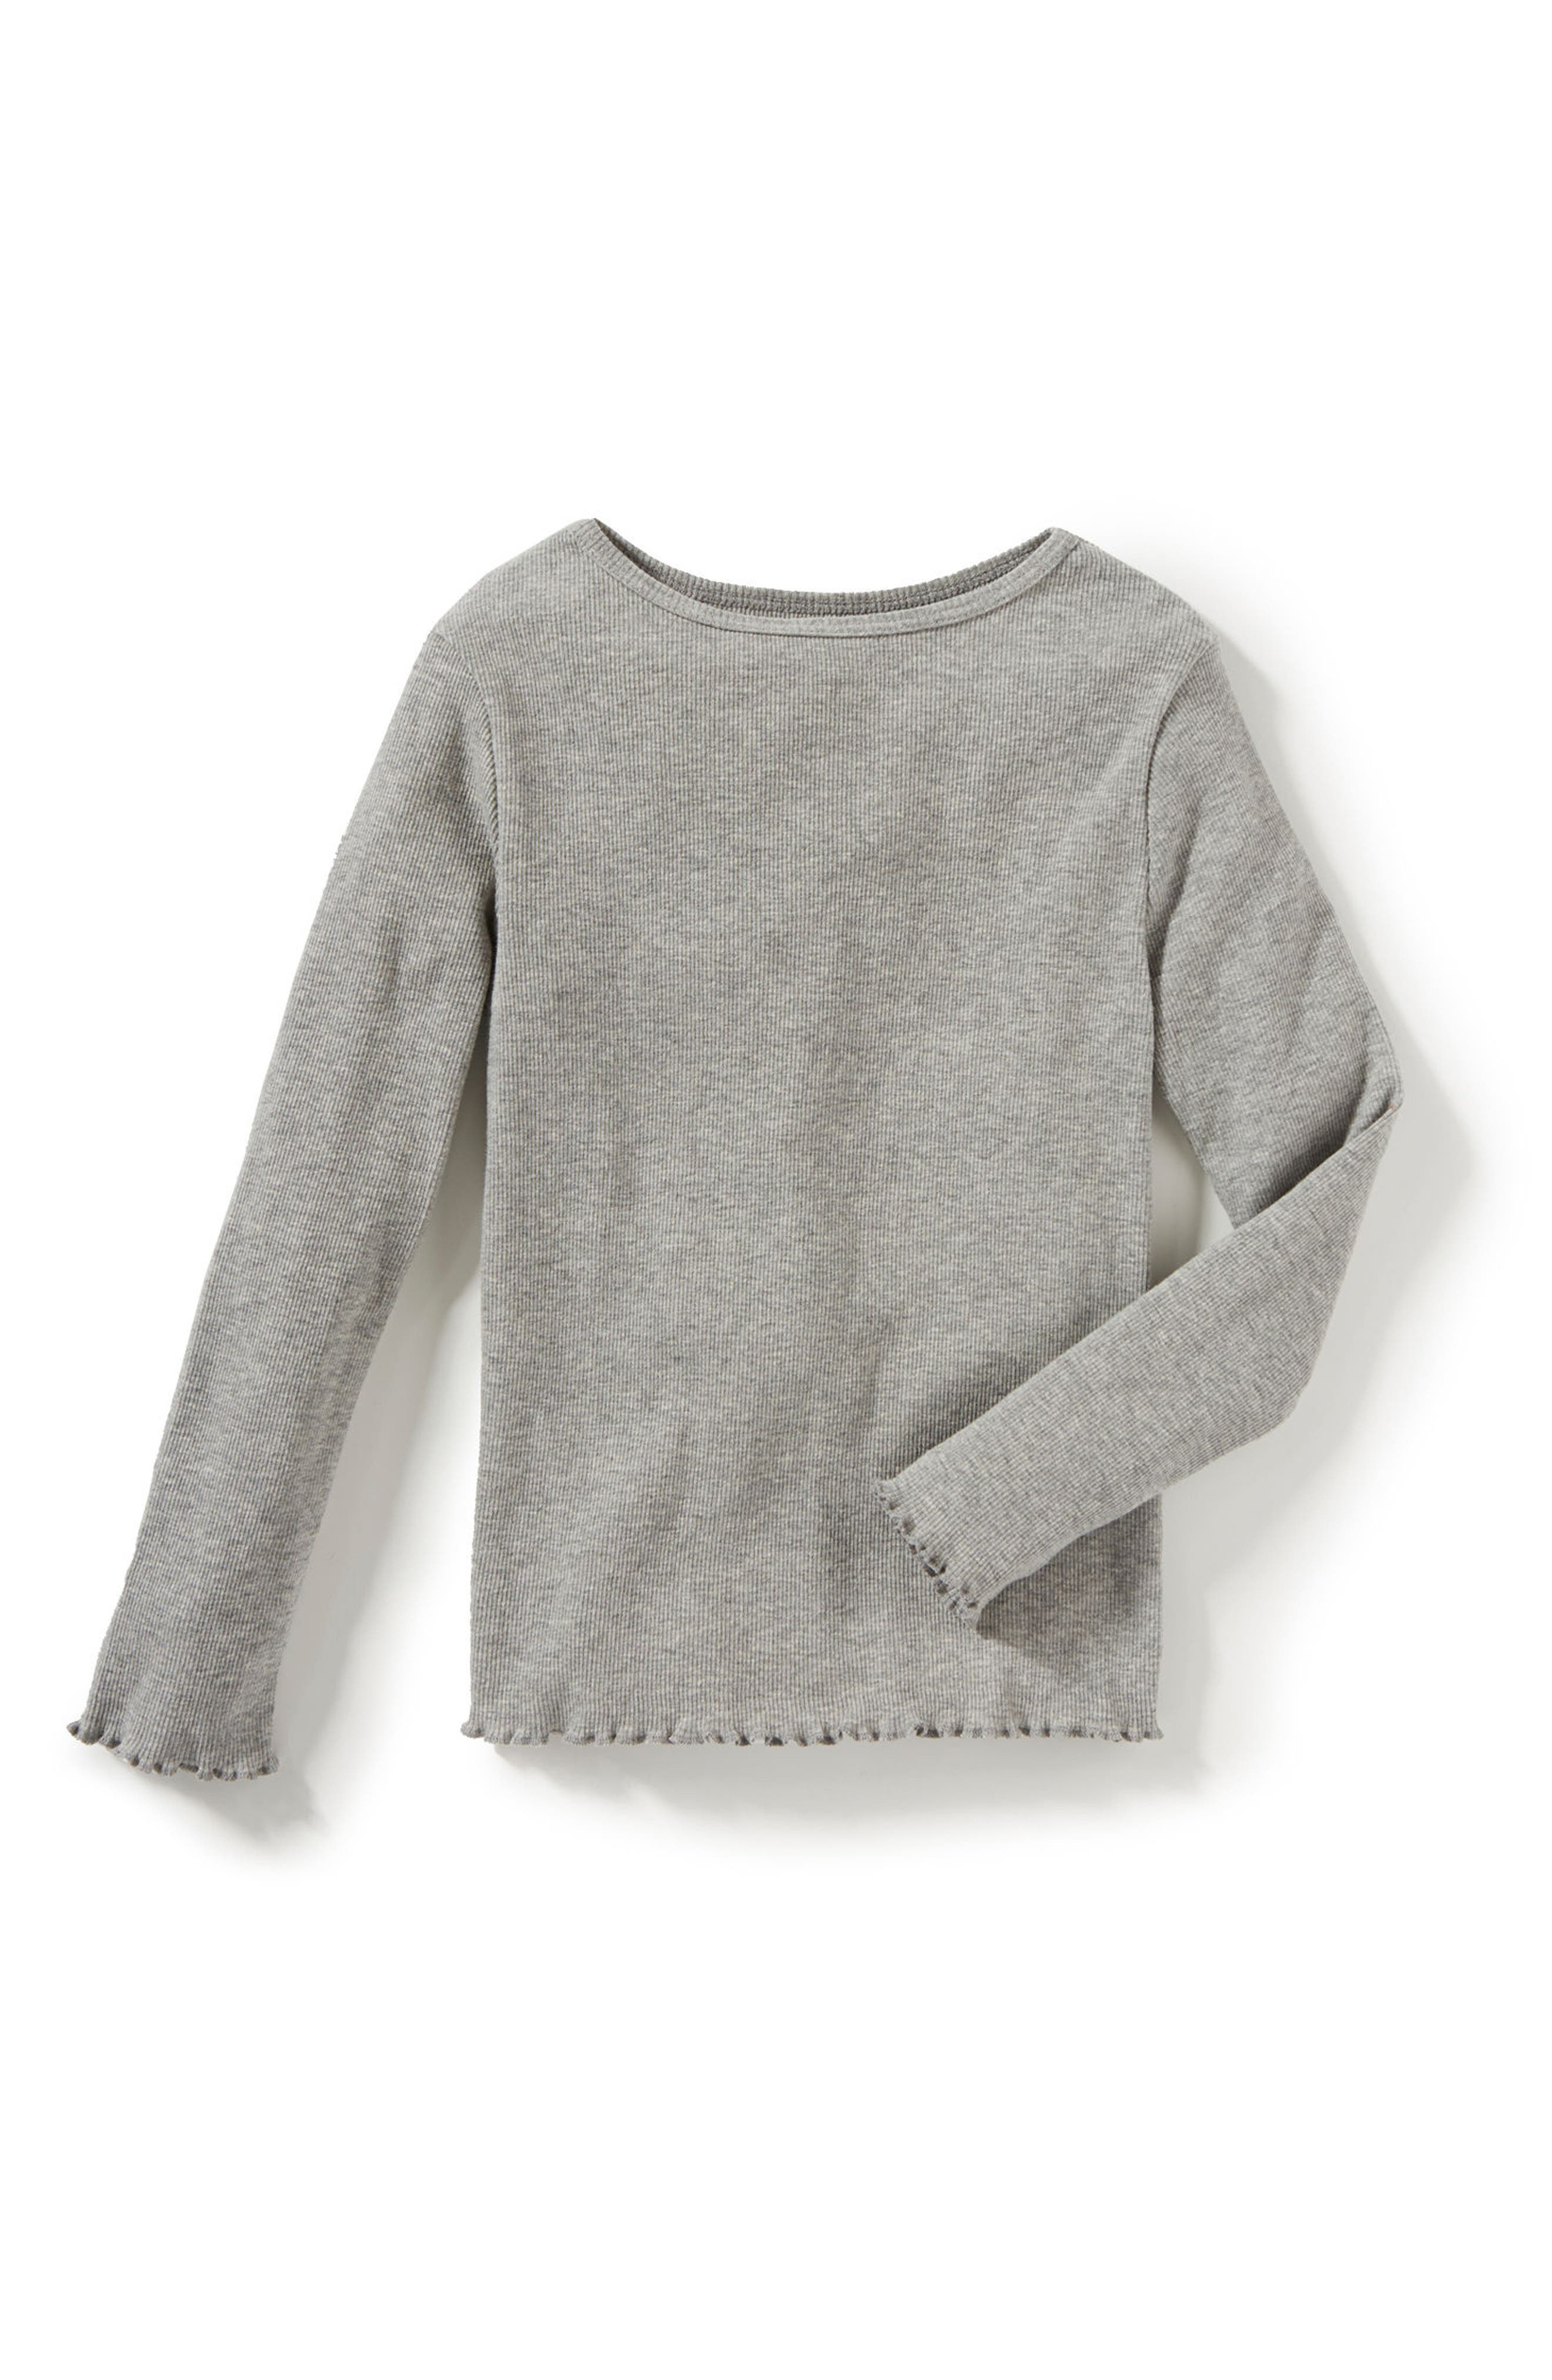 Peek Marie Long Sleeve Tee (Toddler Girls, Little Girls & Big Girls)